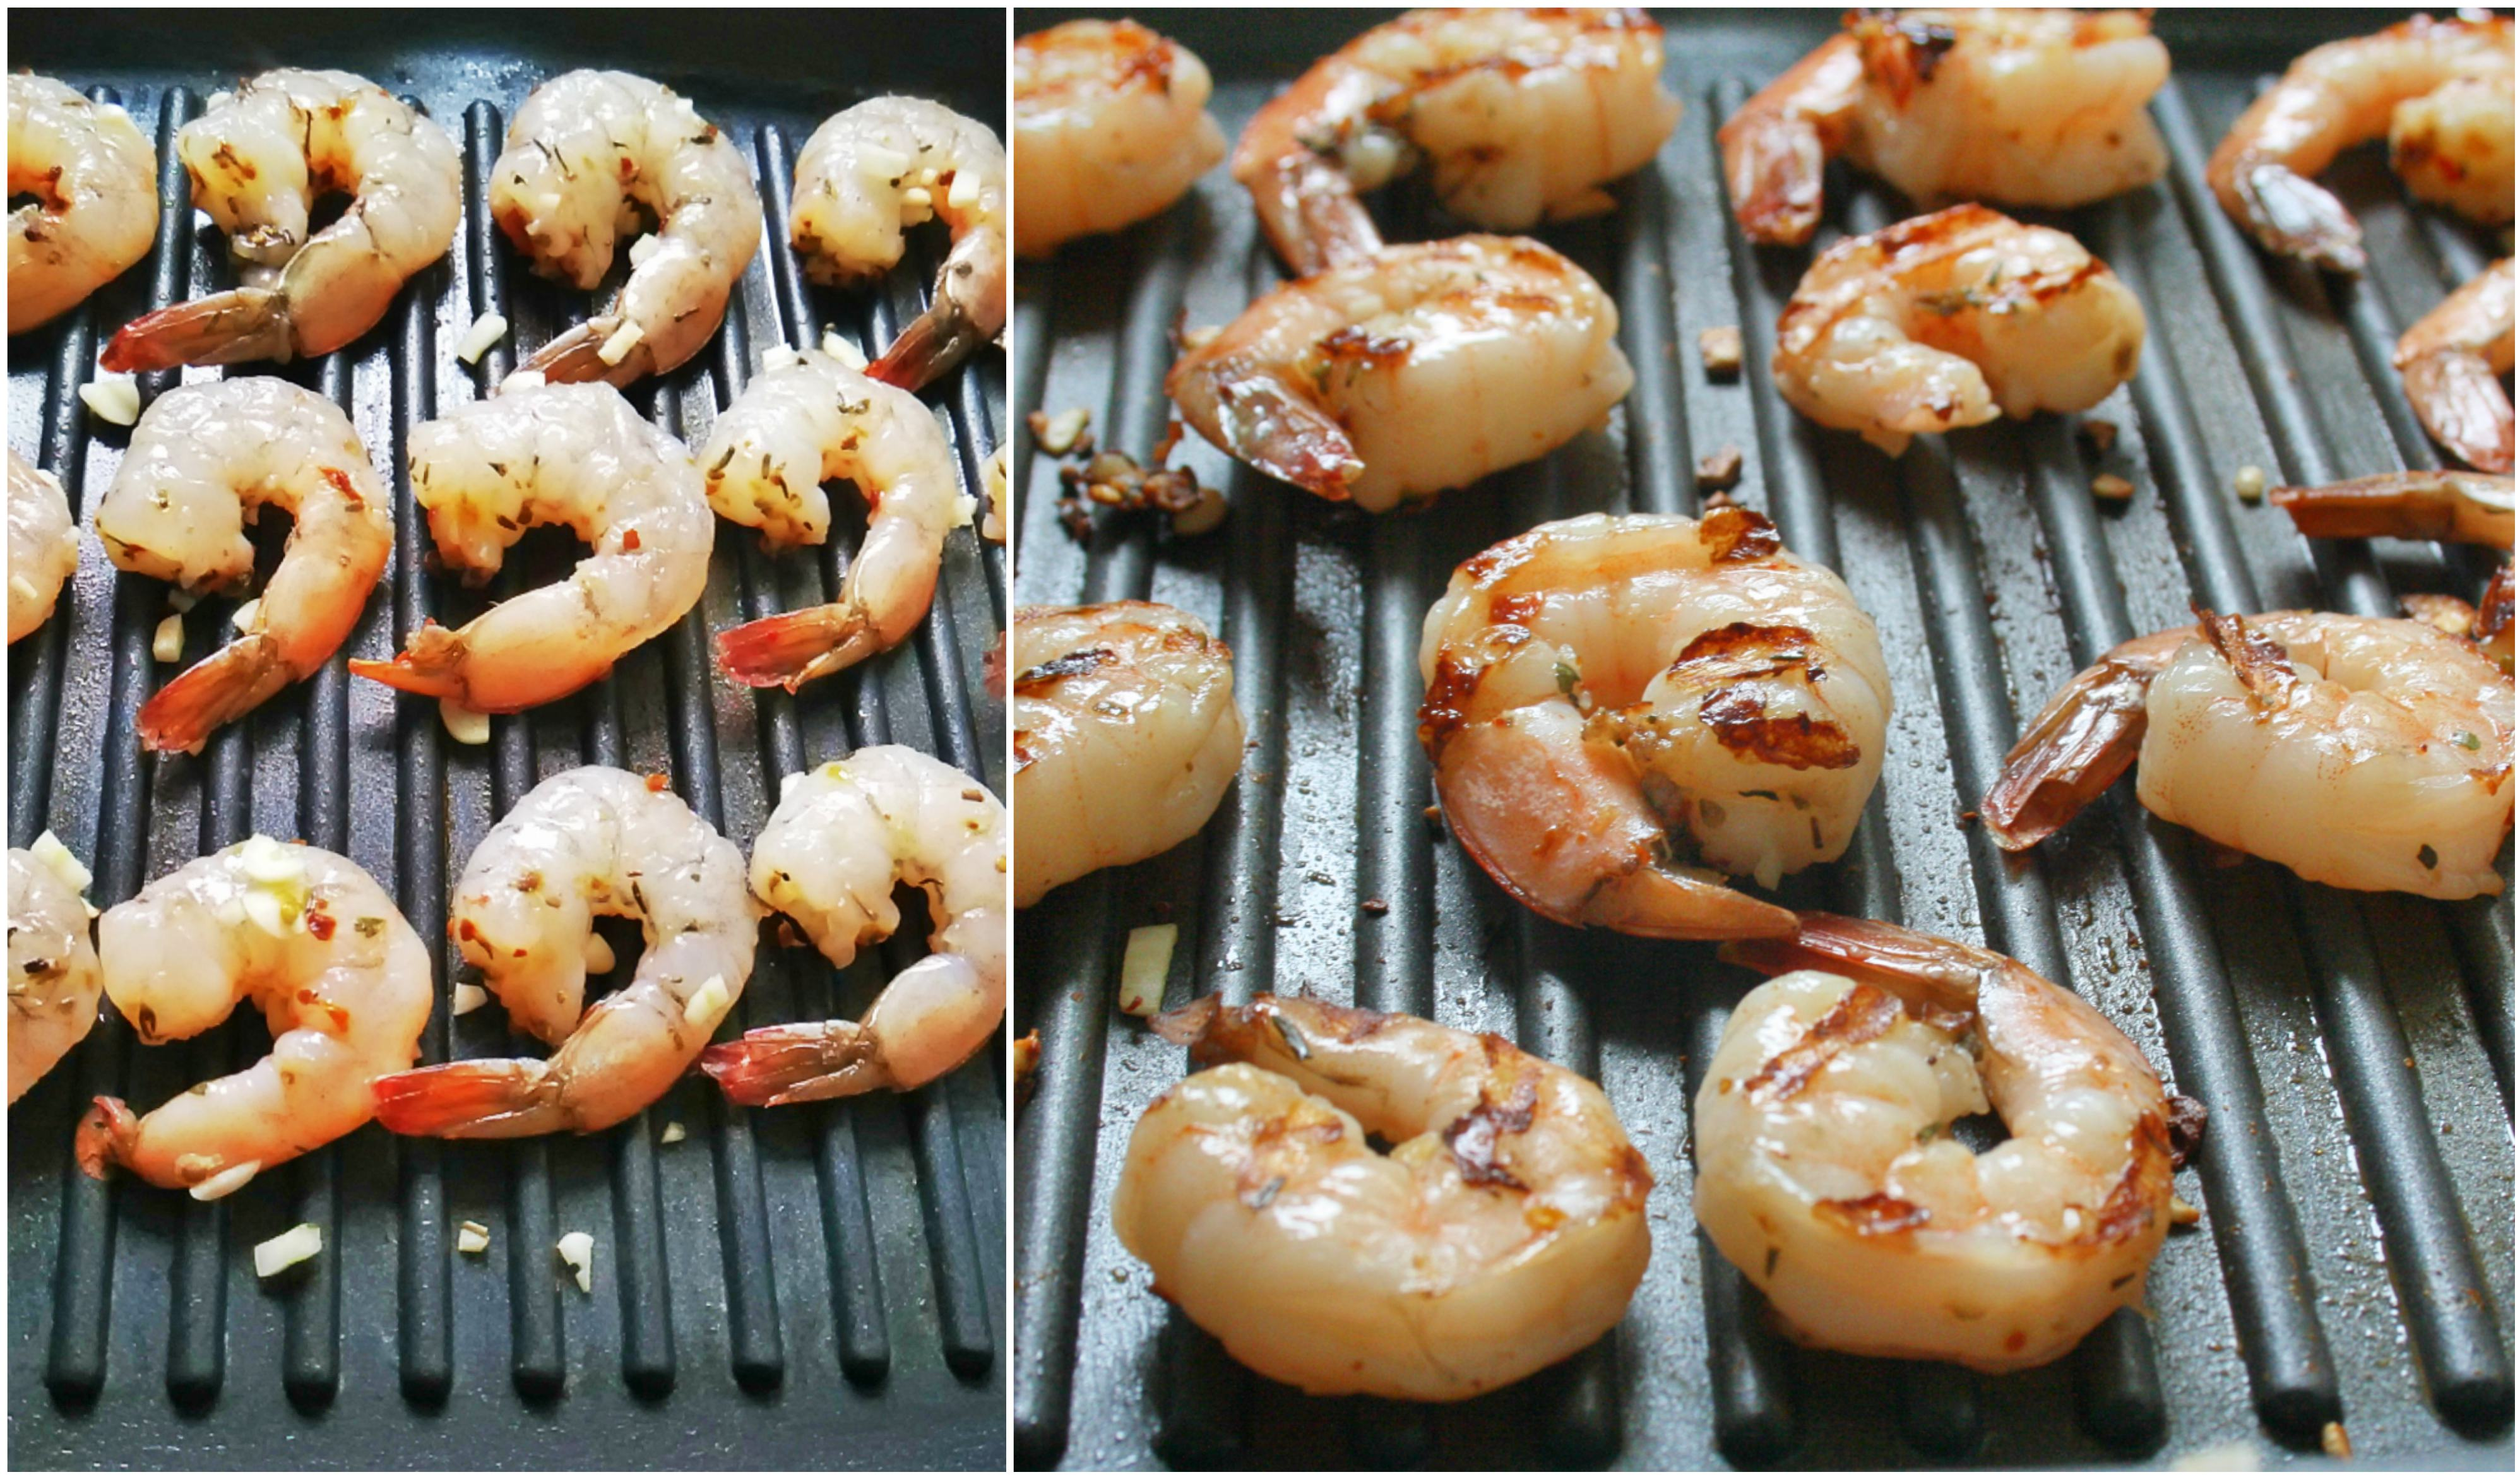 Cooking Marinated Prawns